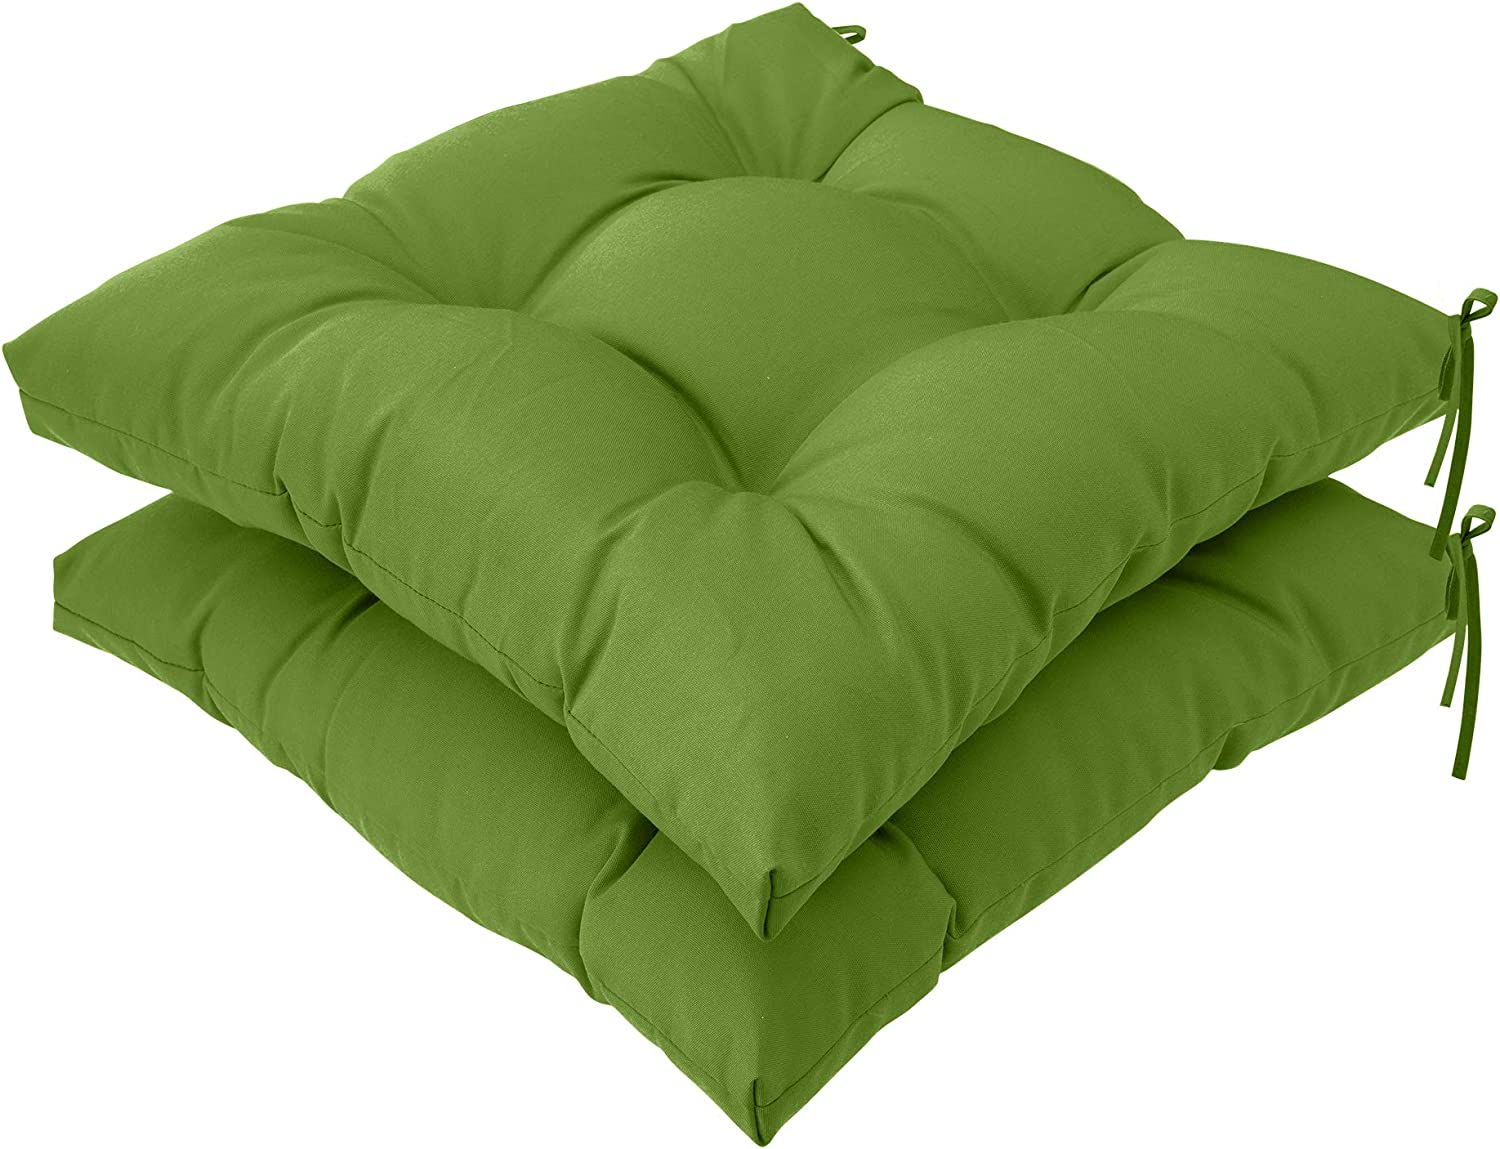 QILLOWAY Indoor/Outdoor All Weather Square Seat Patio Cushion -Pack of 2 ,19-Inches (Green)